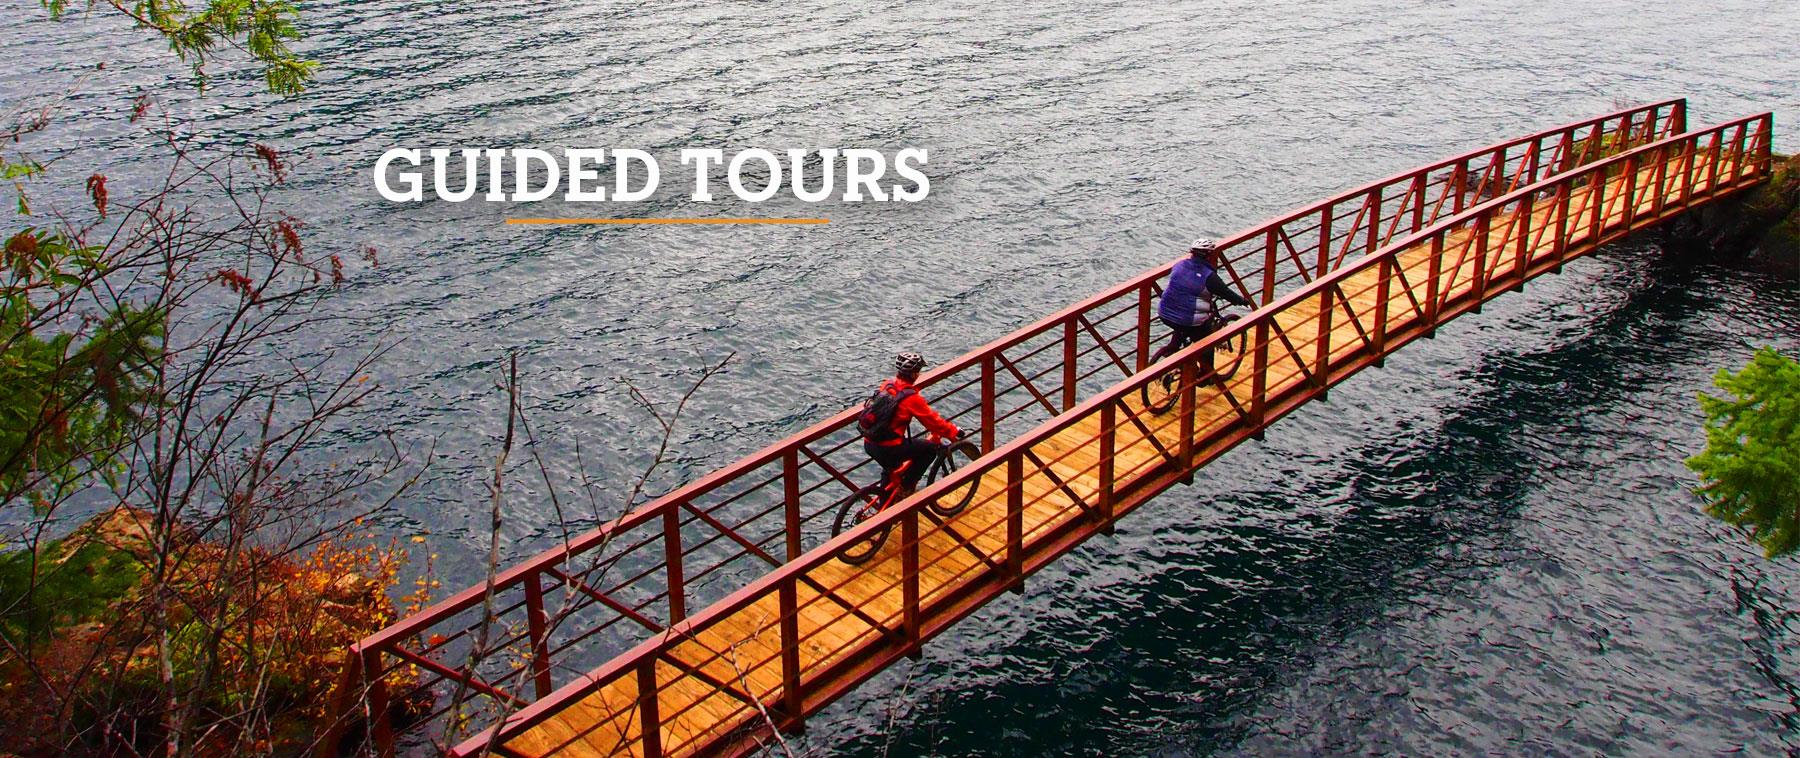 Guided Tours in Port Angeles